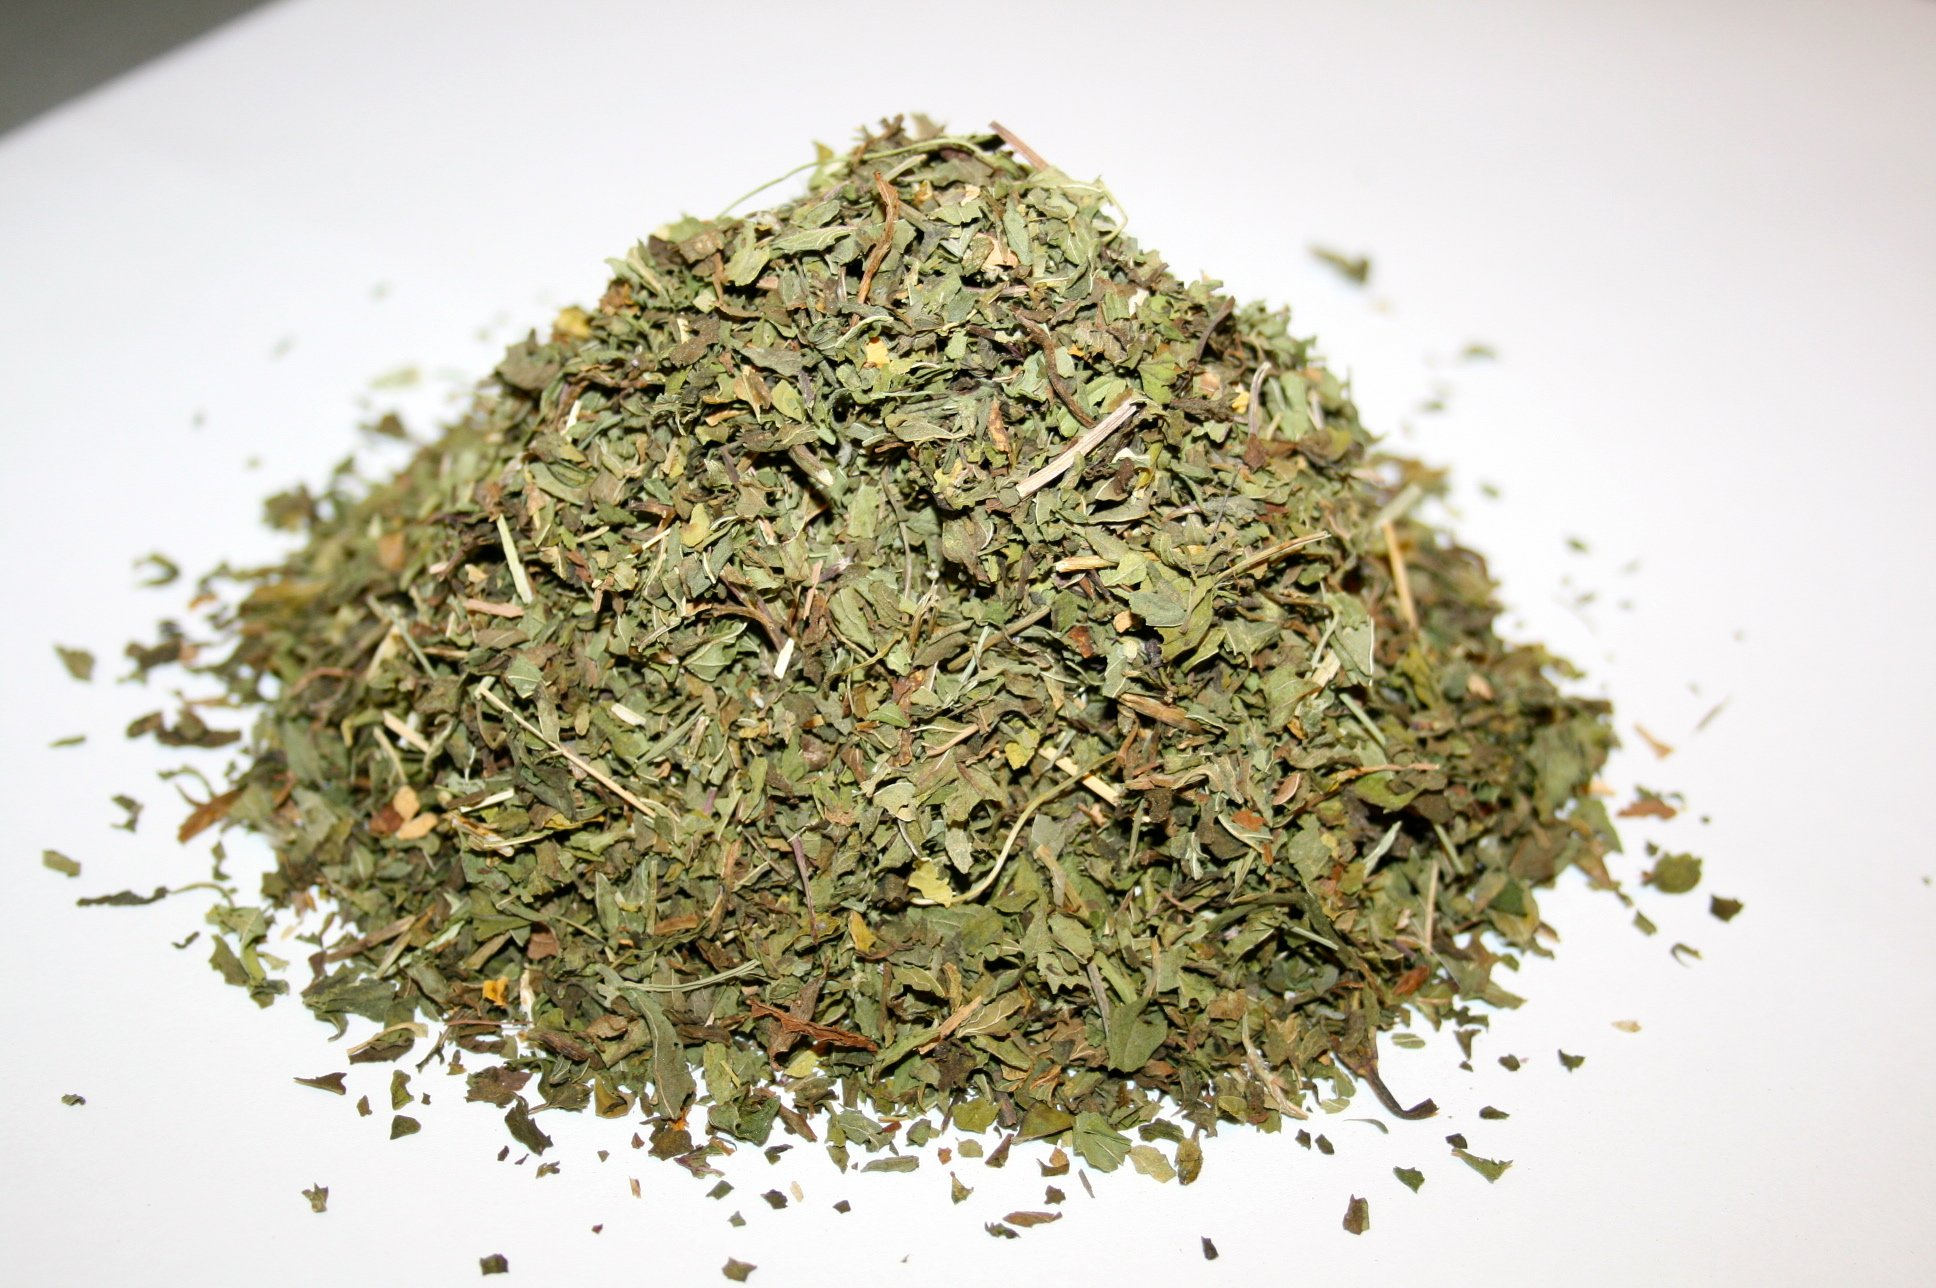 Organic Bio Herbs-Organic Dried Peppermint Leaves Cut (Mentha Piperita) 4 Oz.